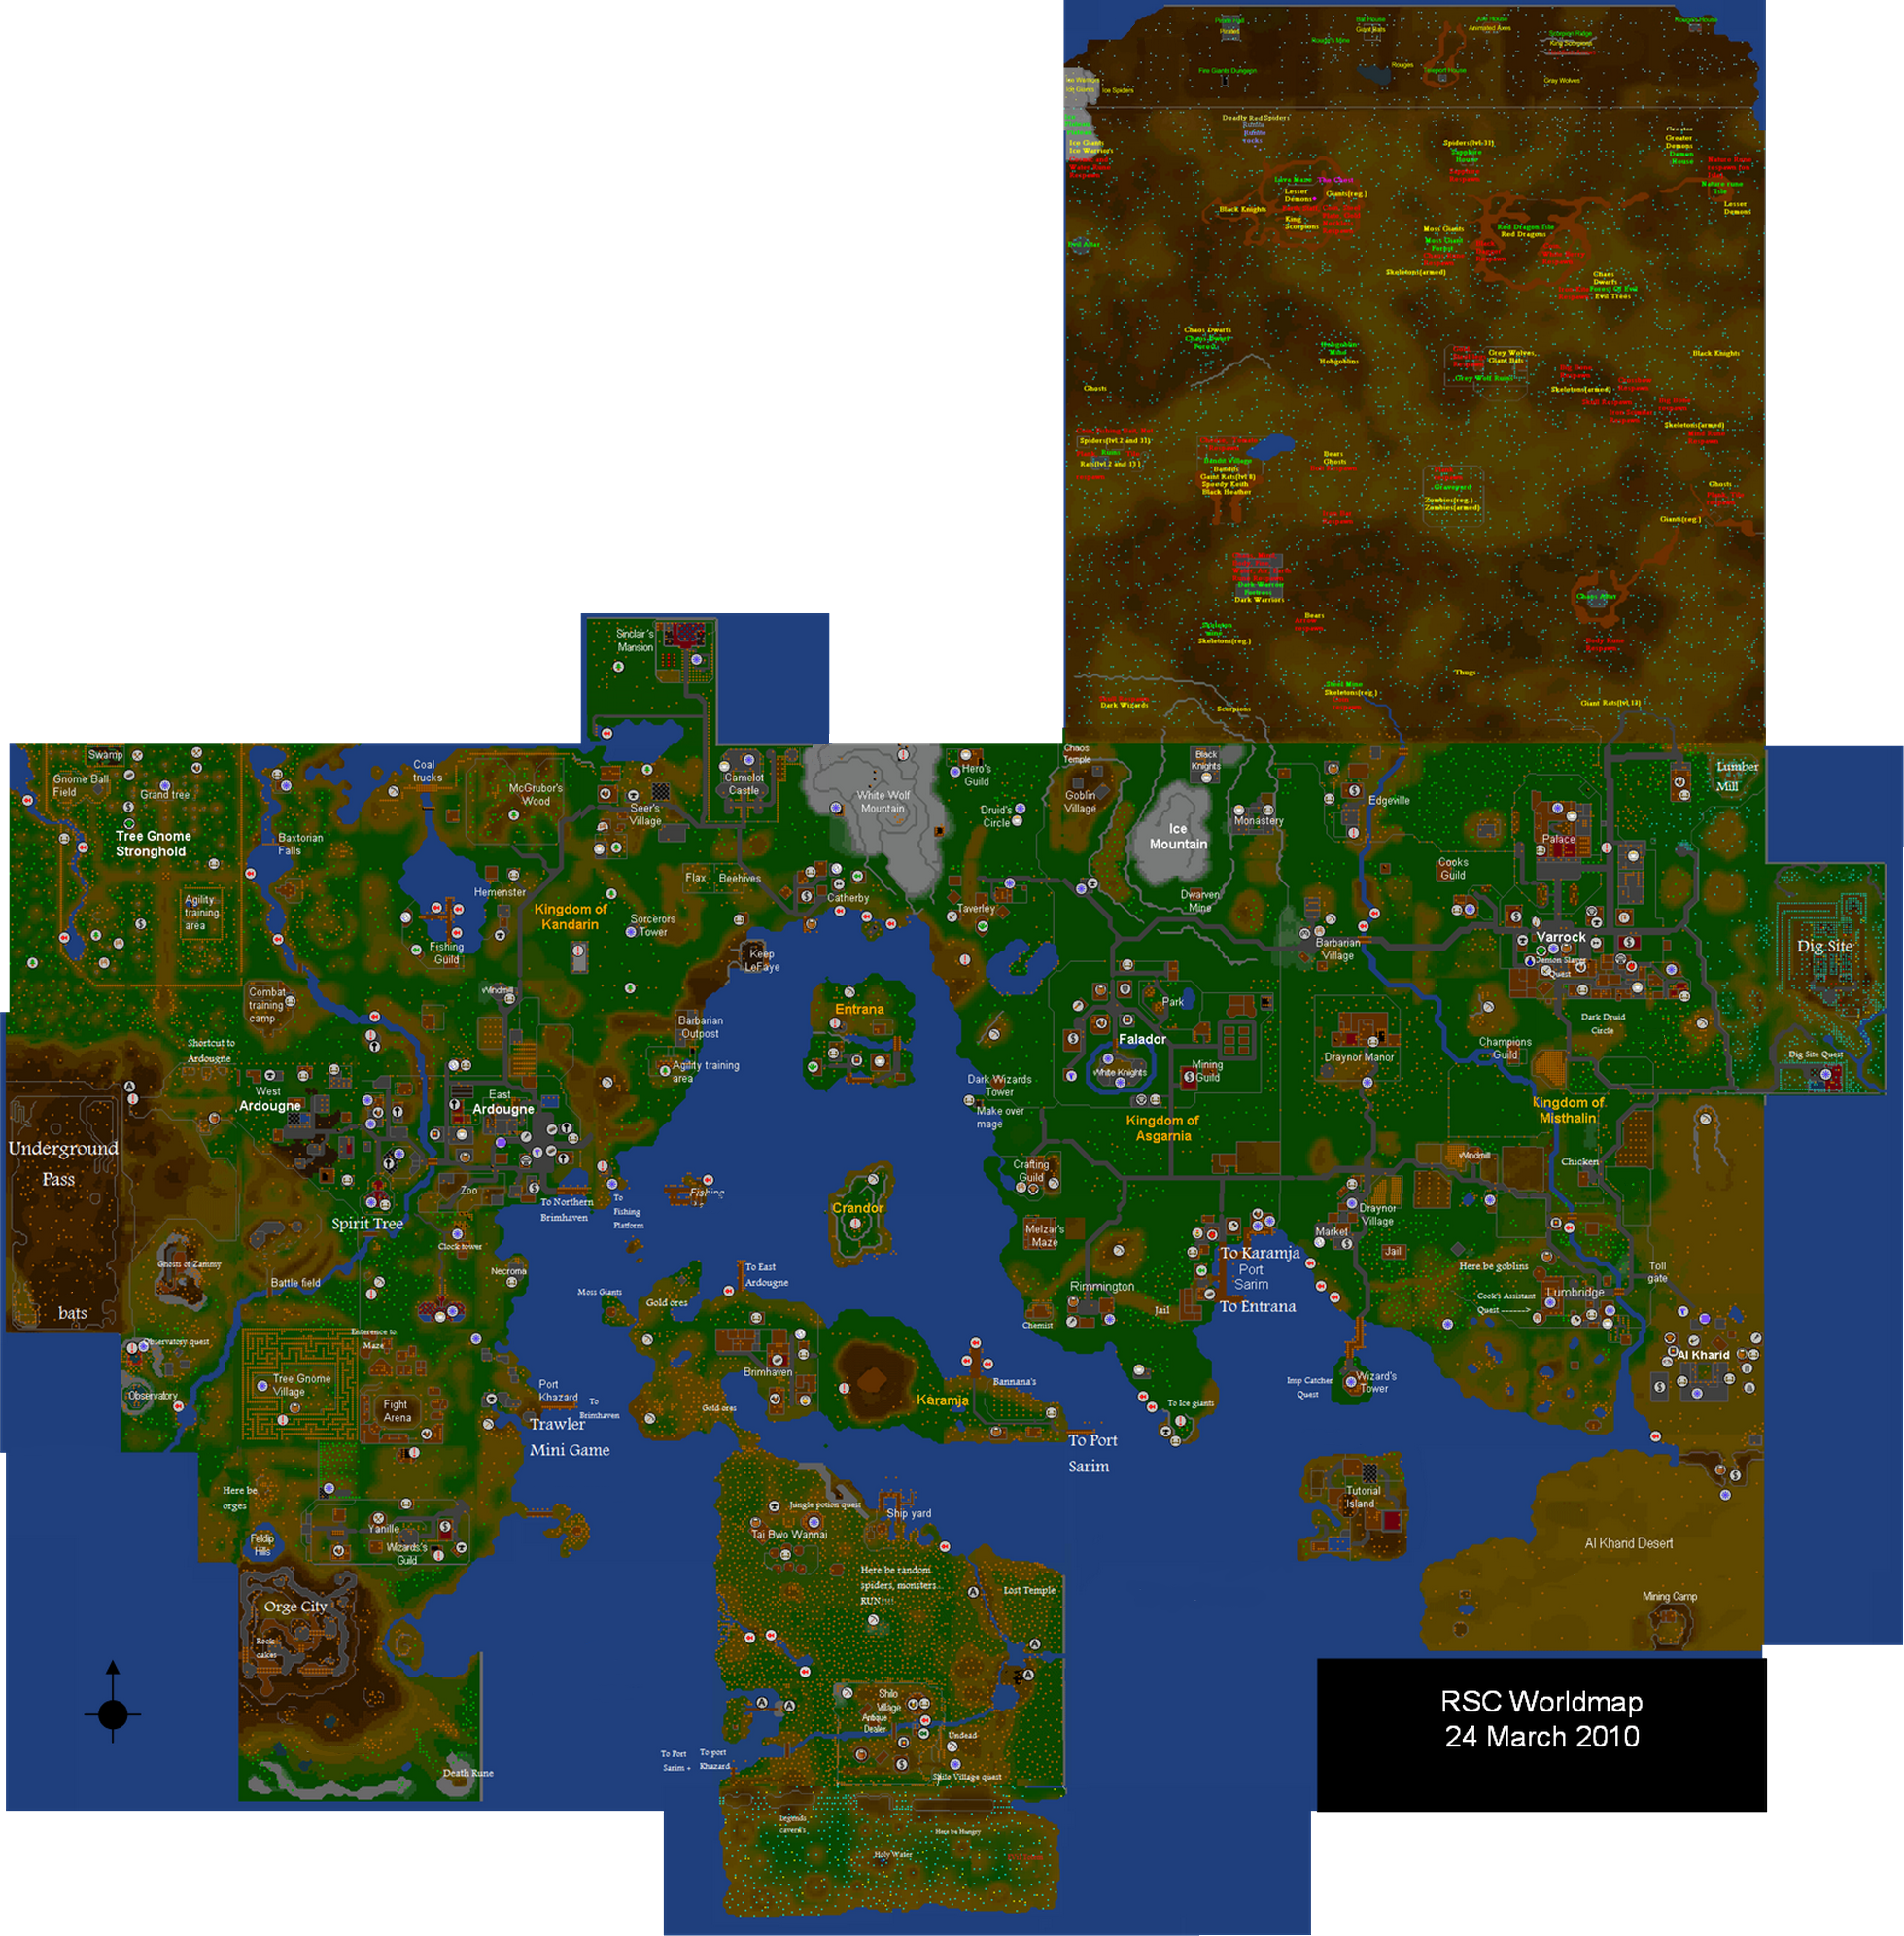 rsc world mappng